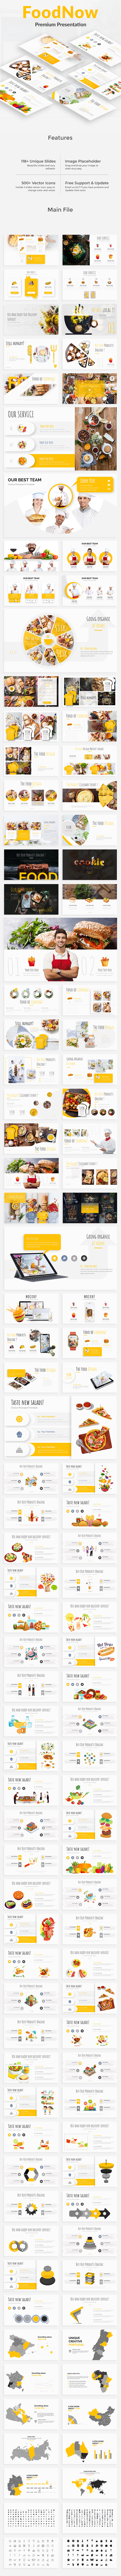 FoodNow Creative Keynote Template - Creative Keynote Templates